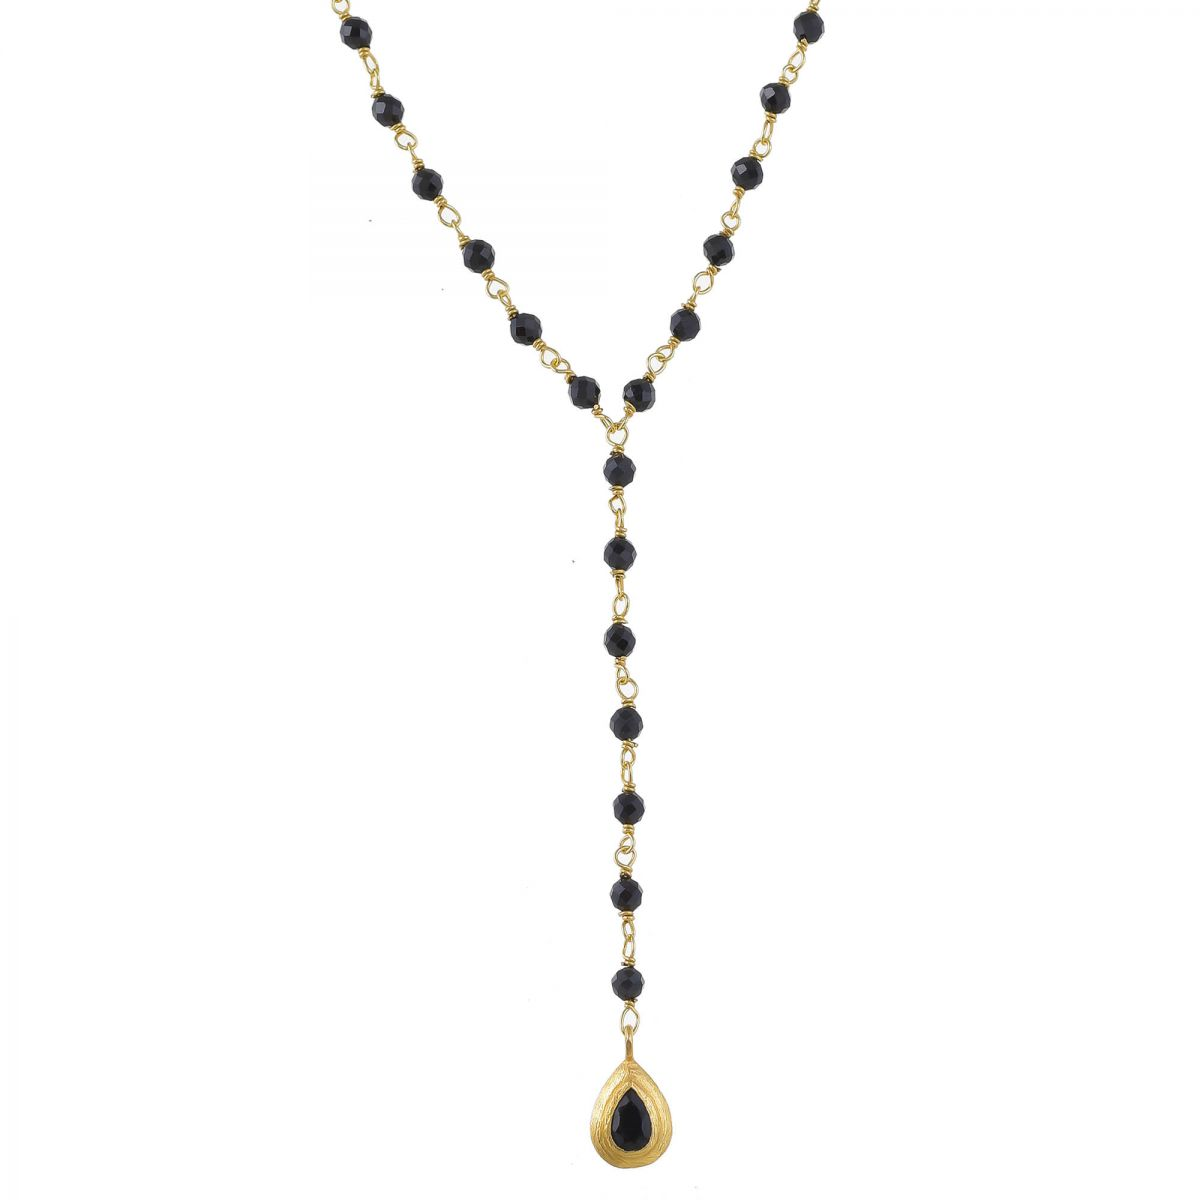 mcollier black agate beads with drop gold plated